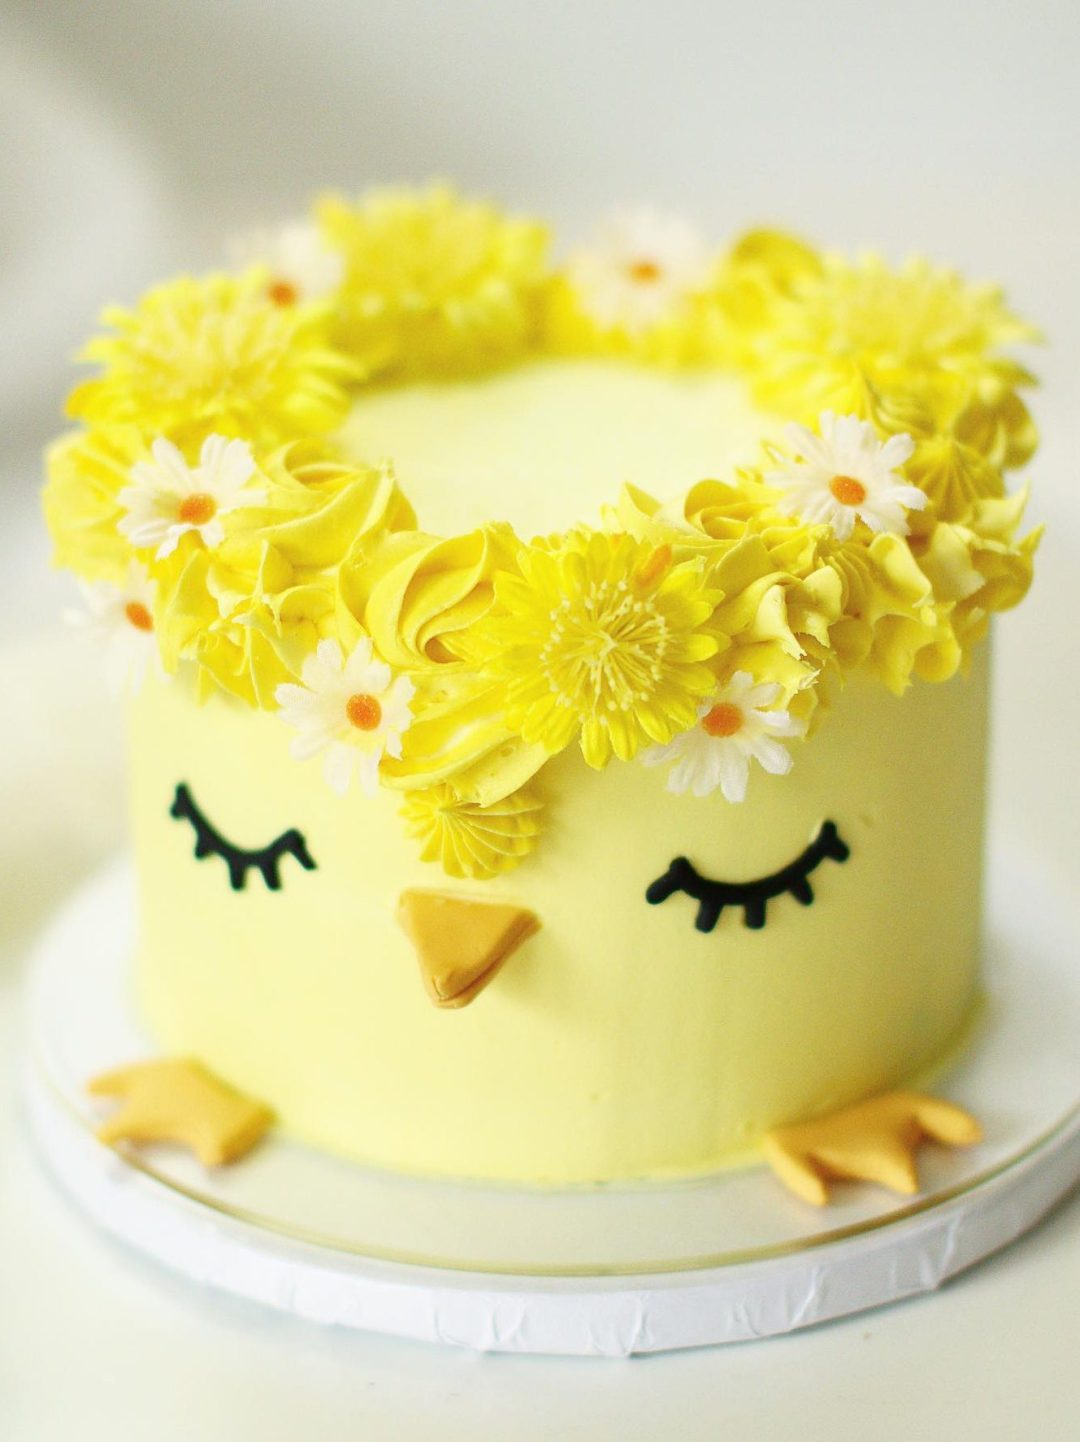 Cute Yellow Chick Cake For Easter